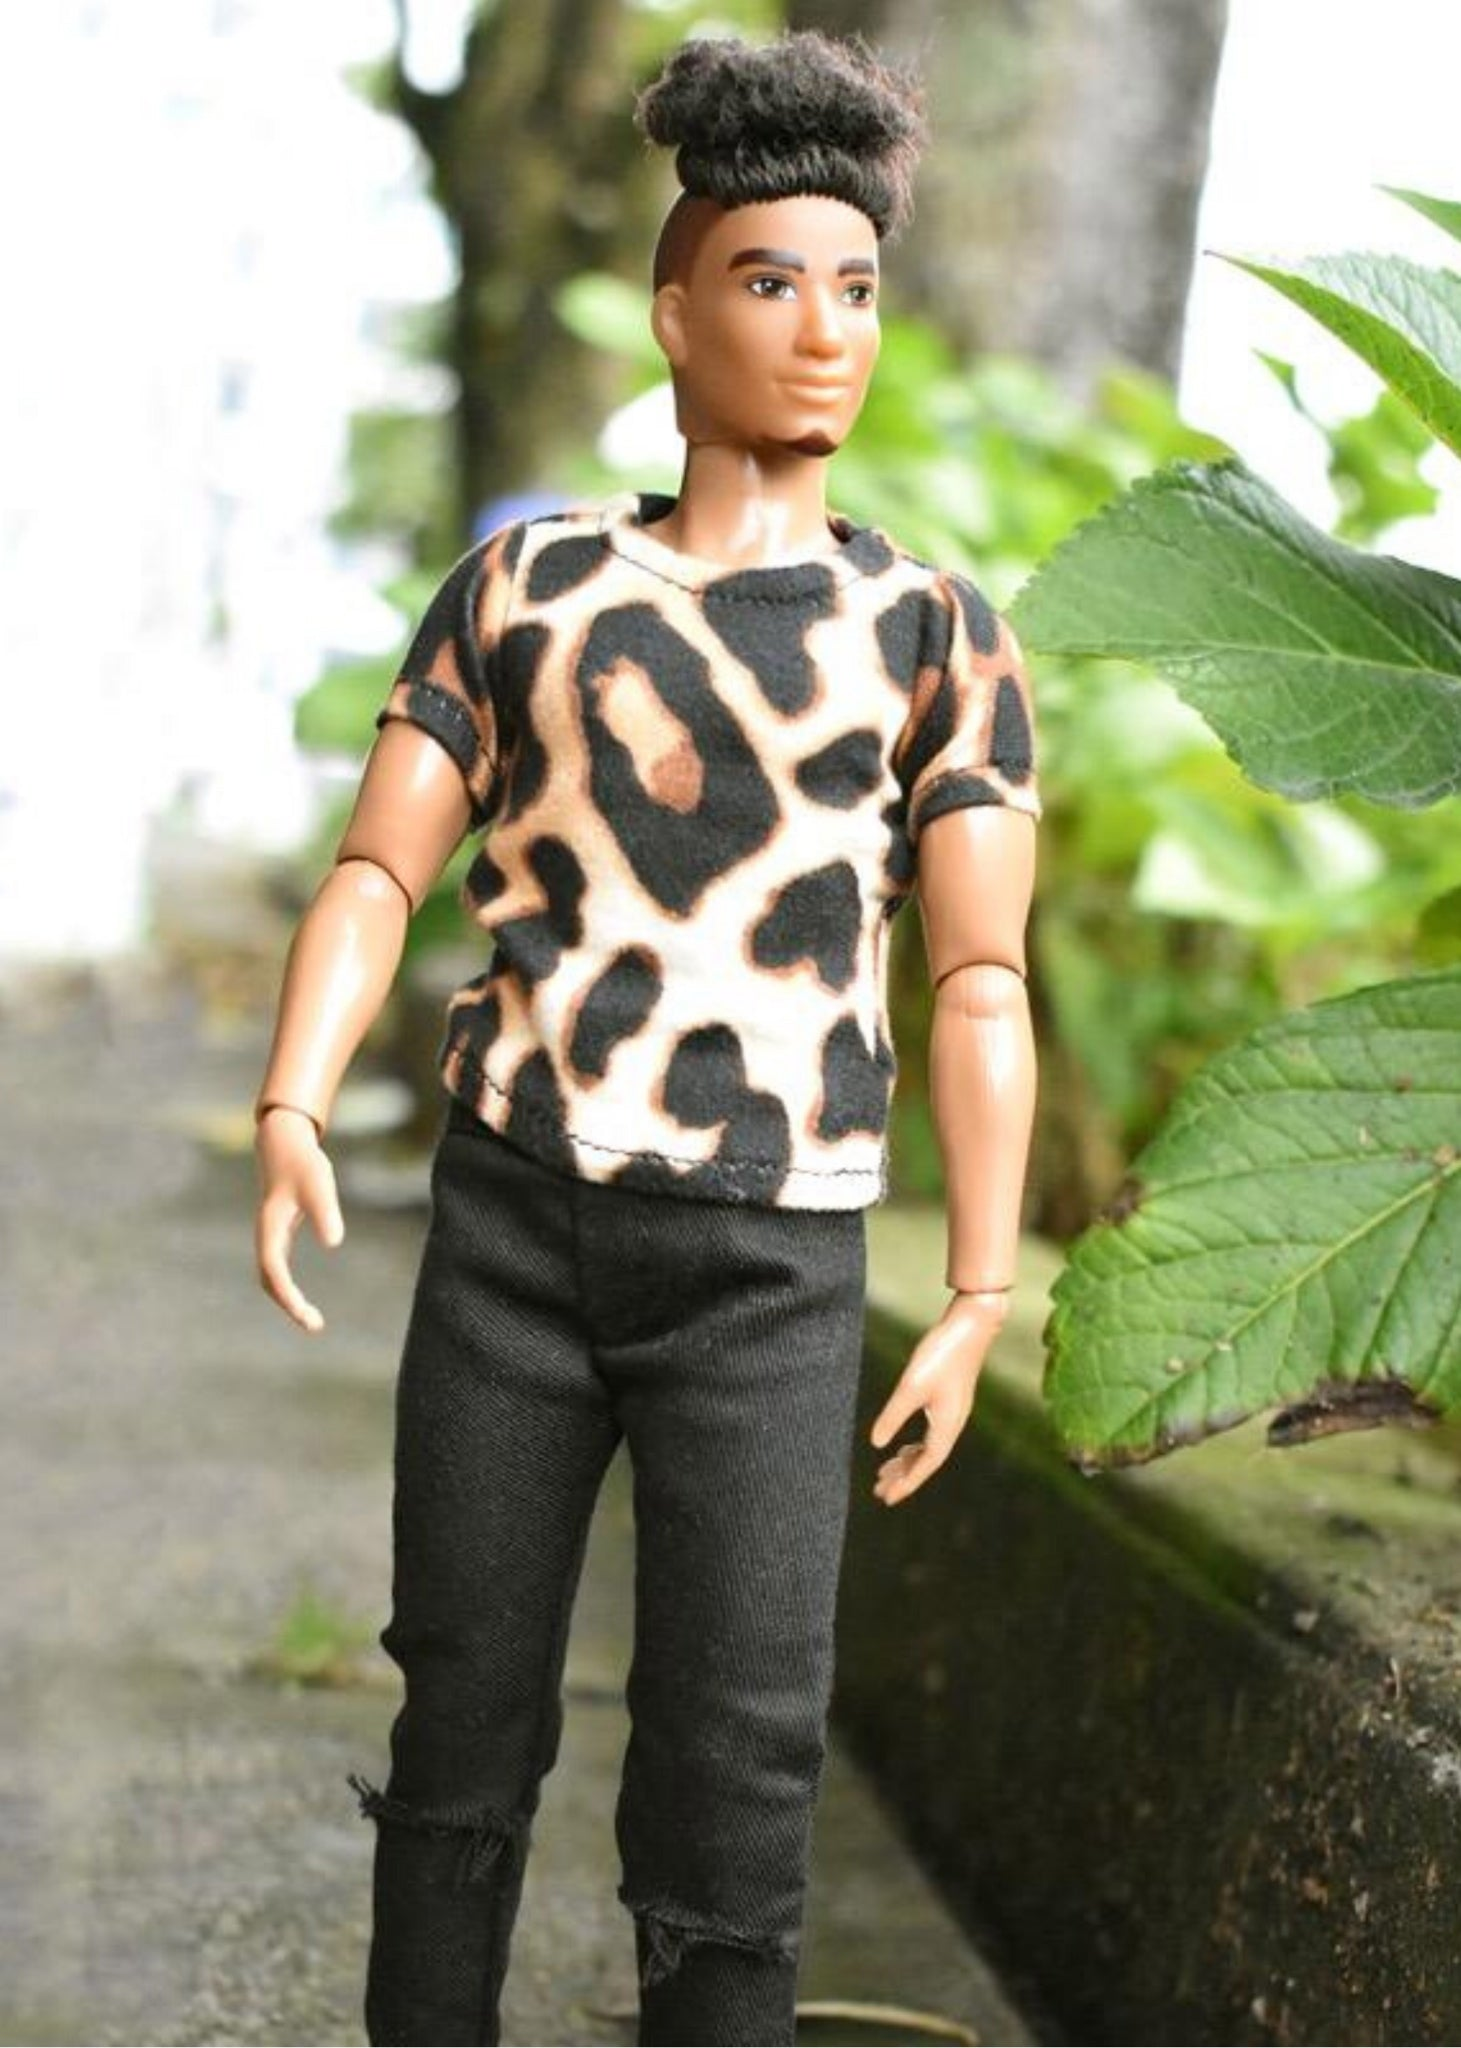 a male doll wearing hole jeans and animal print shirt.